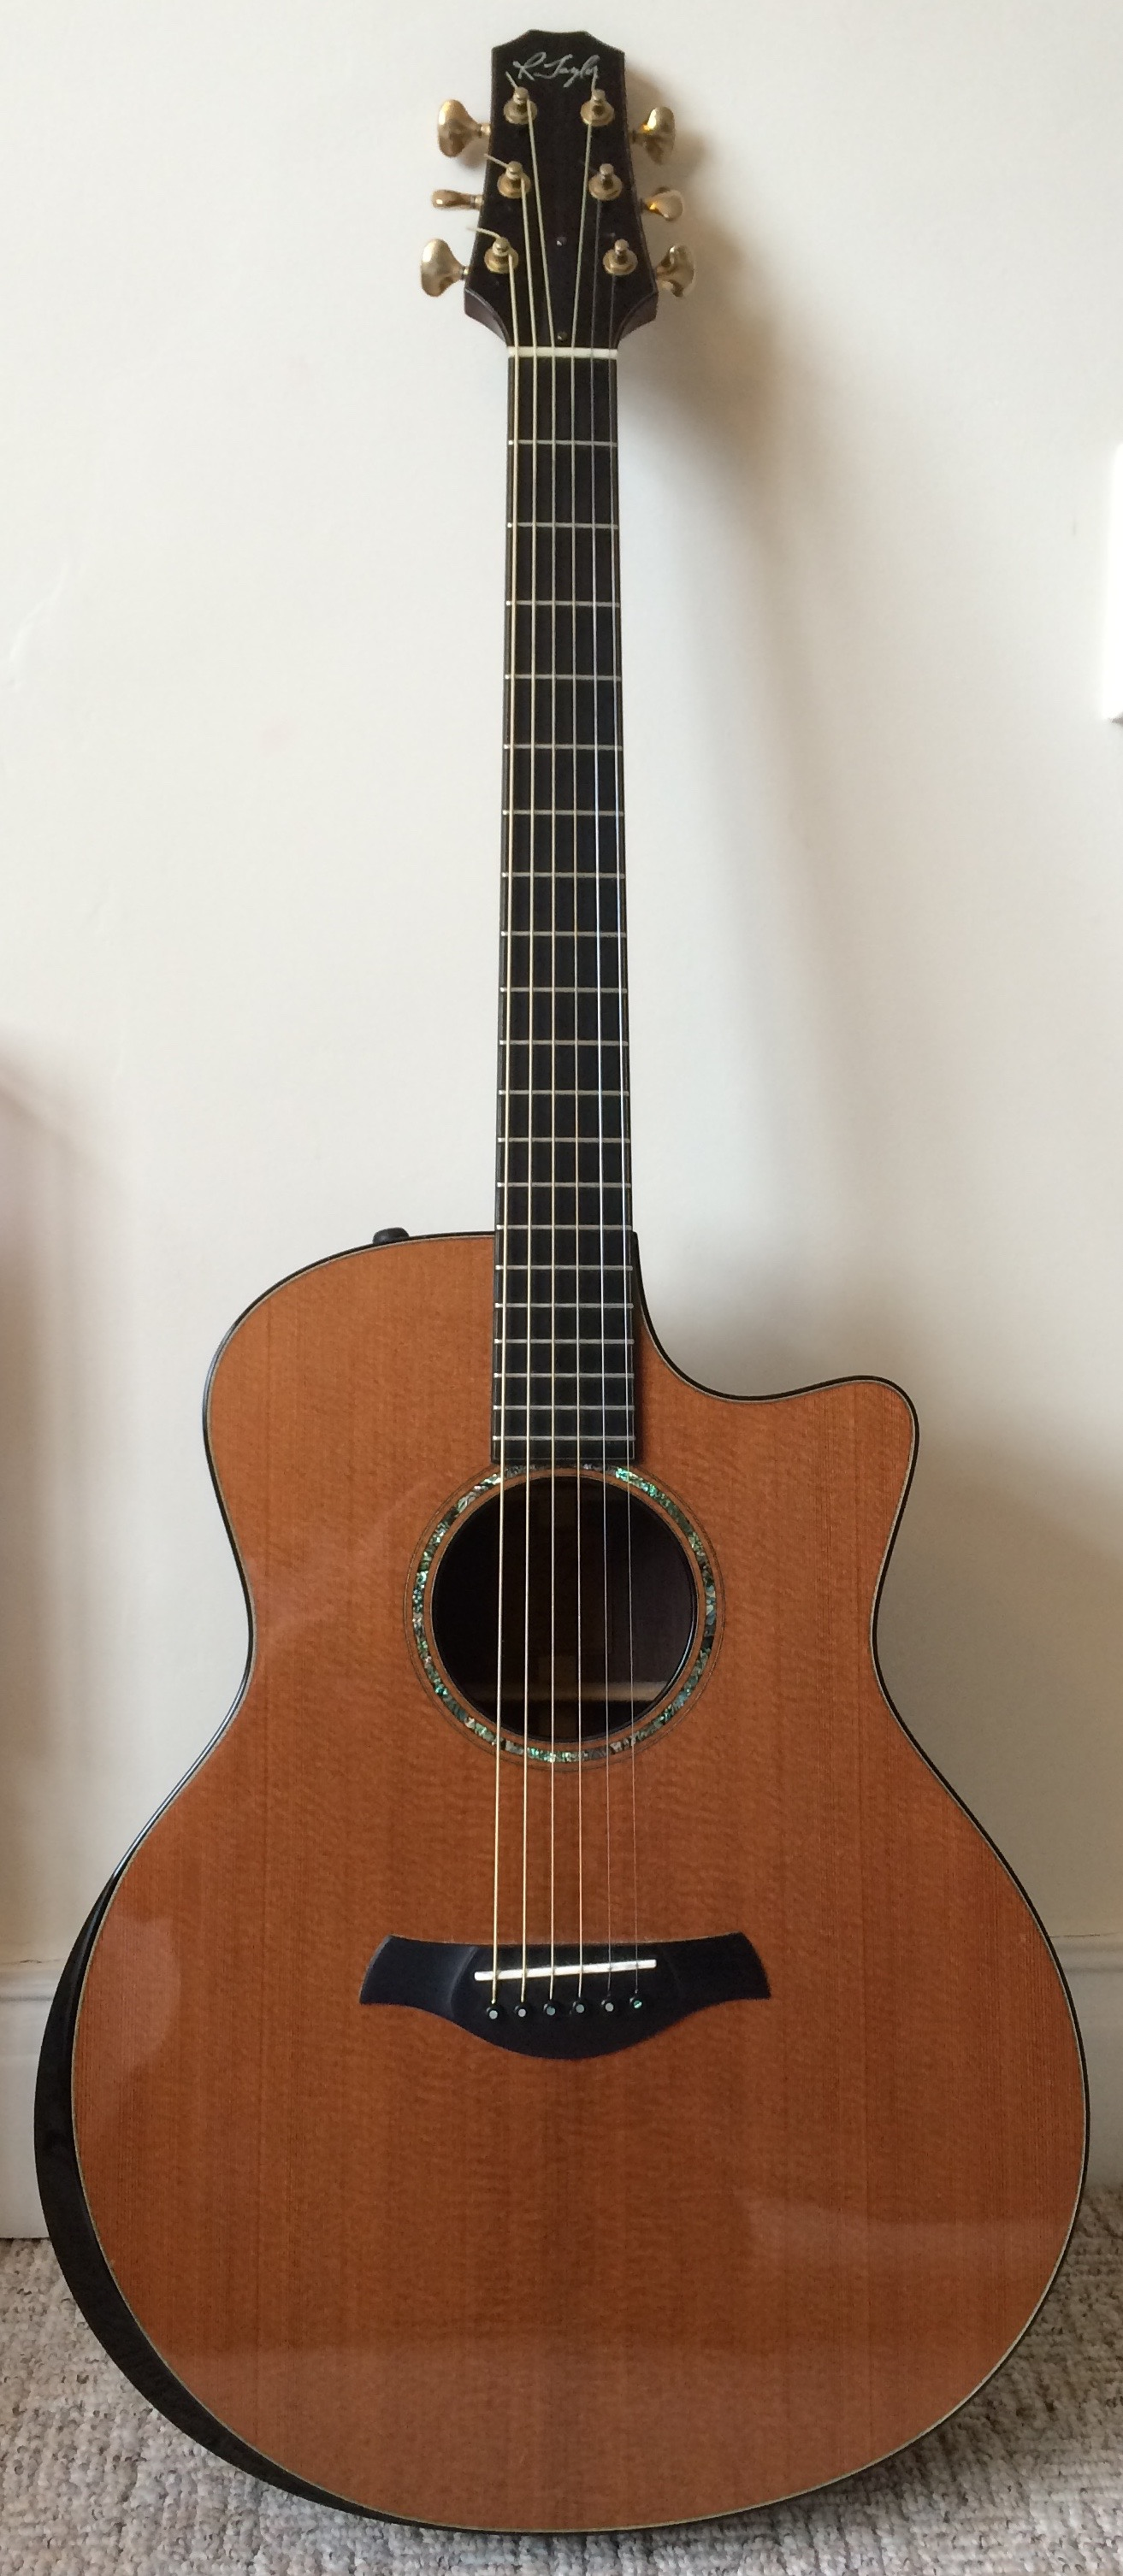 "R. TAYLOR - A.J has a R. Taylor Style 1 (2007) with redwood top, indian rosewood back and sides and a venetian cutaway. The Style One is the same size as the Taylor Grand Symphony, but with several significant structural differences. It has a 16 inch lower bought and is built with a modified X brace, 65' radius to the top and a 25 1/2"" scale length. It is fitted with the standard Taylor Expression System pickup which was fitted after purchase.The headstock is fitted with a Taylor bone nut, brushed gold Gotoh 510 tuners and black ebony look buttons which lower weight. There is a wave compensated bone saddle, plus ebony pins with abalone dots at the bridge.Unlike standard Taylor's the R.Taylor has solid kerfing which results in extremely rigid sides allowing the top to be made thinner and braced lighter. Done by hand the result is more volume and better tone.R.Taylor was a completely separate company from Taylor guitars. Their guitars took about three times as long to make due to extensive individual voicing and handwork.Unfortunately they turned out to be in competition with Taylor's Build To Order and custom guitar programs and they ceased production at the end of 2011. R.Taylor only made about 200 guitars a year for six years. This is in contrast to the two Taylor factories which turn out about 400 guitars per day."